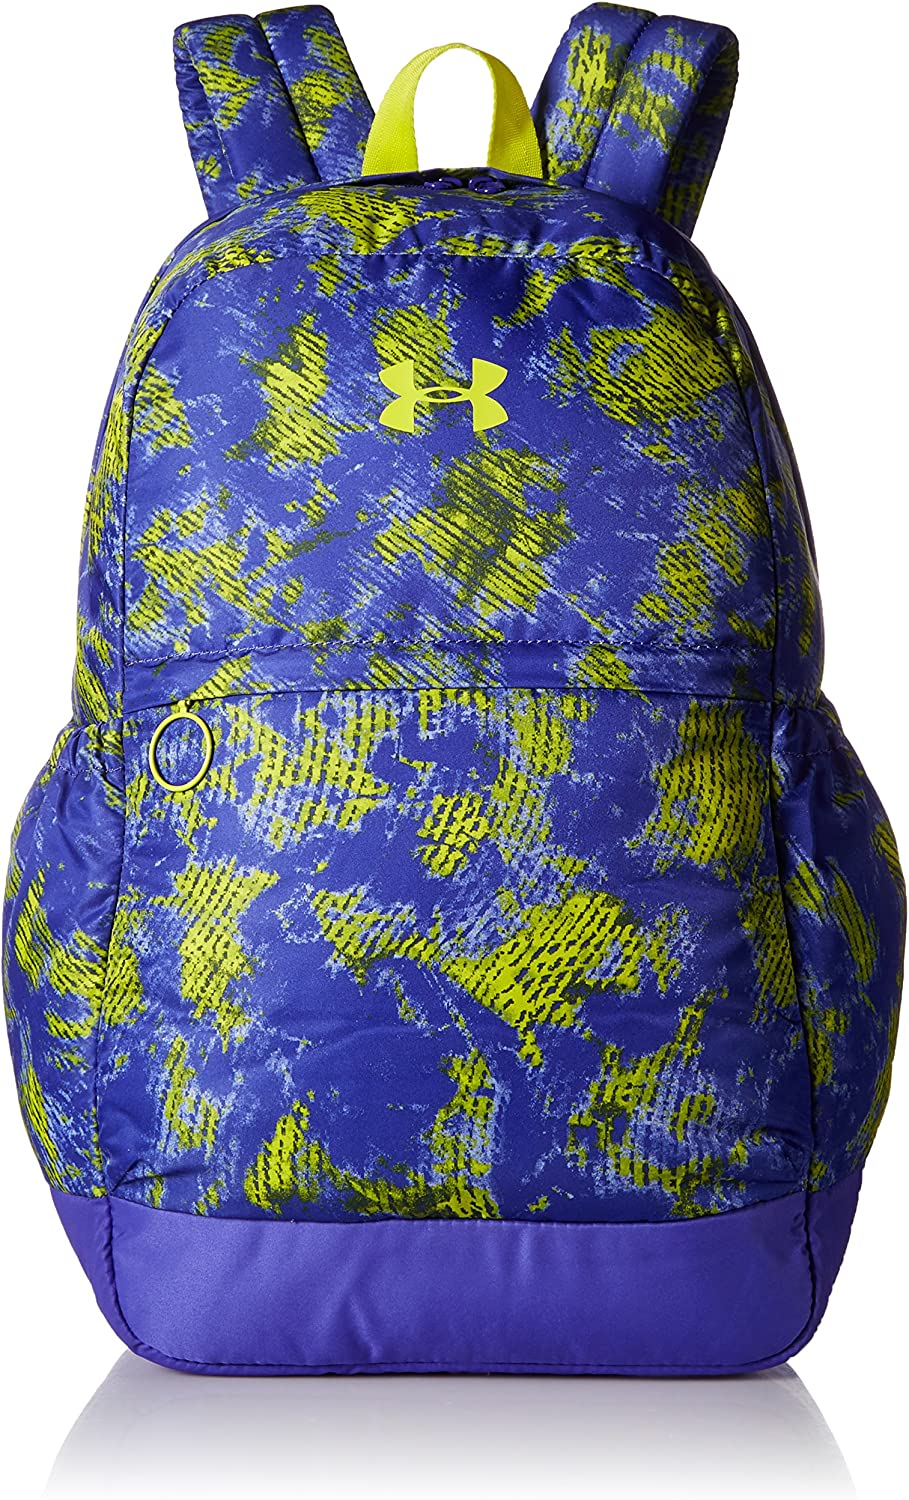 Under Armour Women's UA Backpack Youth Constellation Purple Lucid Lime Backpack